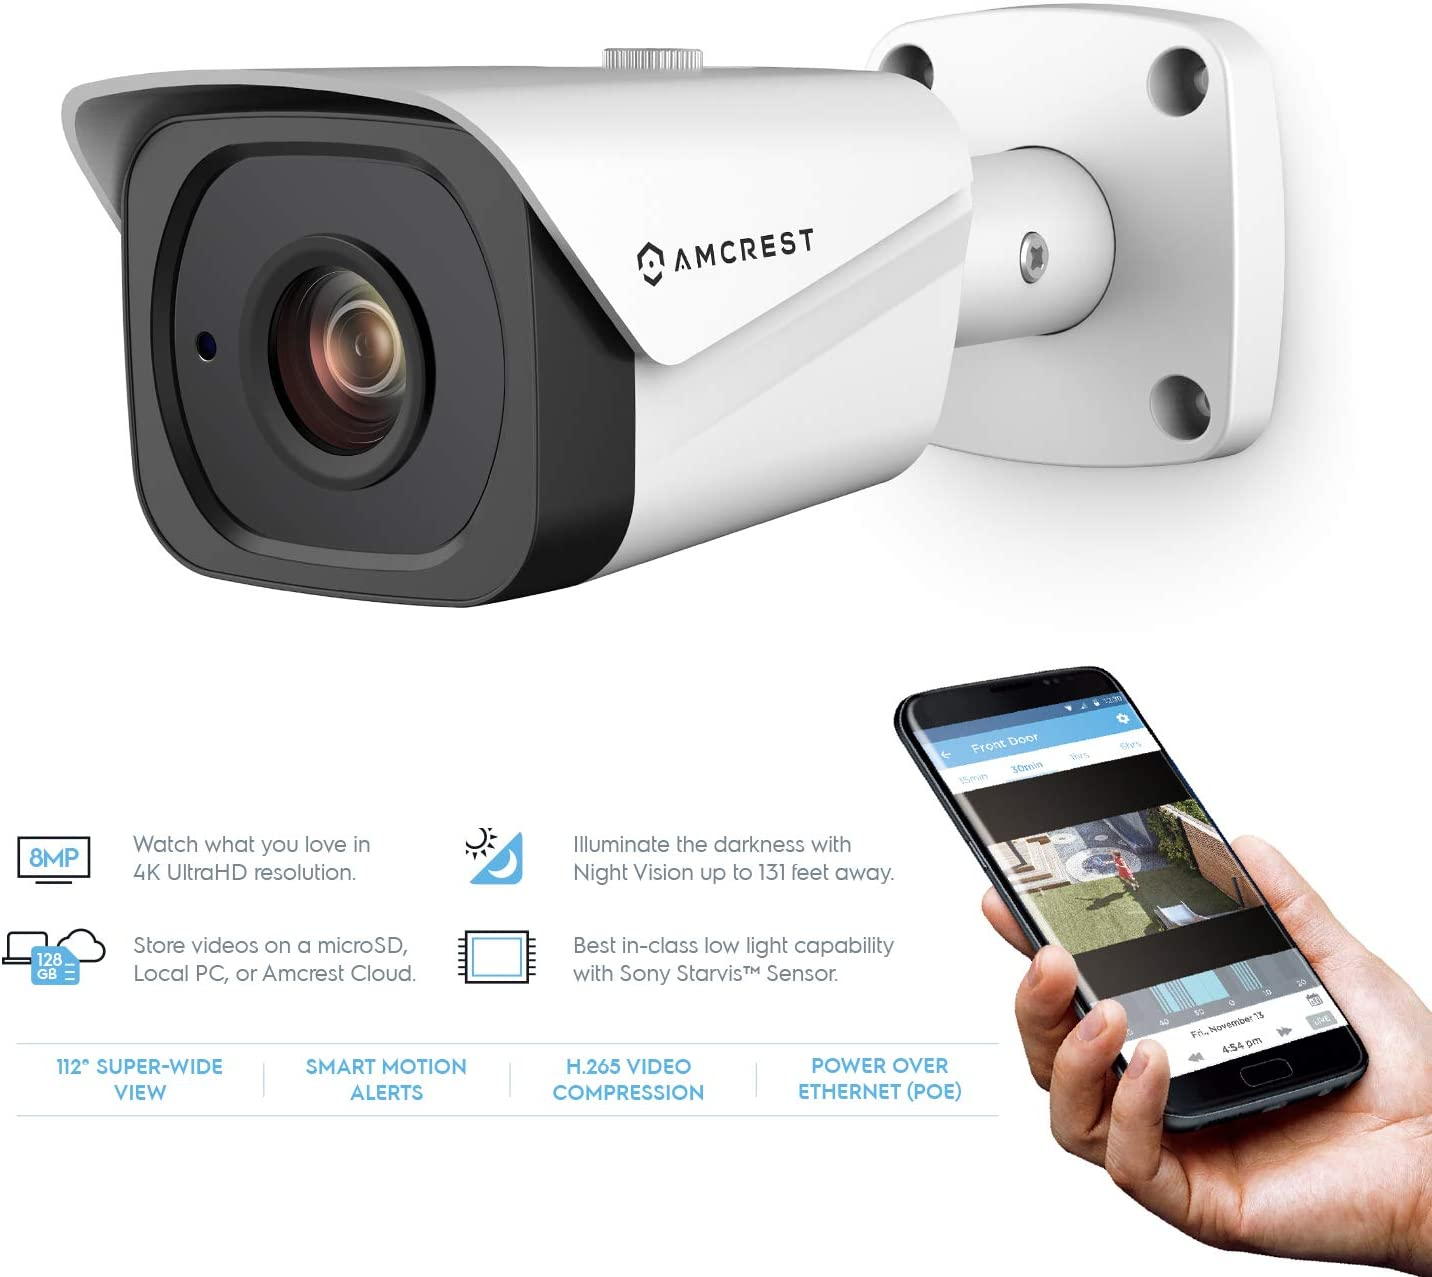 Amcrest UltraHD 4K 8MP Outdoor Bullet POE IP Camera, 3840×2160, 131ft NightVision, 2.8mm Lens, IP67 Weatherproof, MicroSD Recording, White IP8M-2496EW-28MM